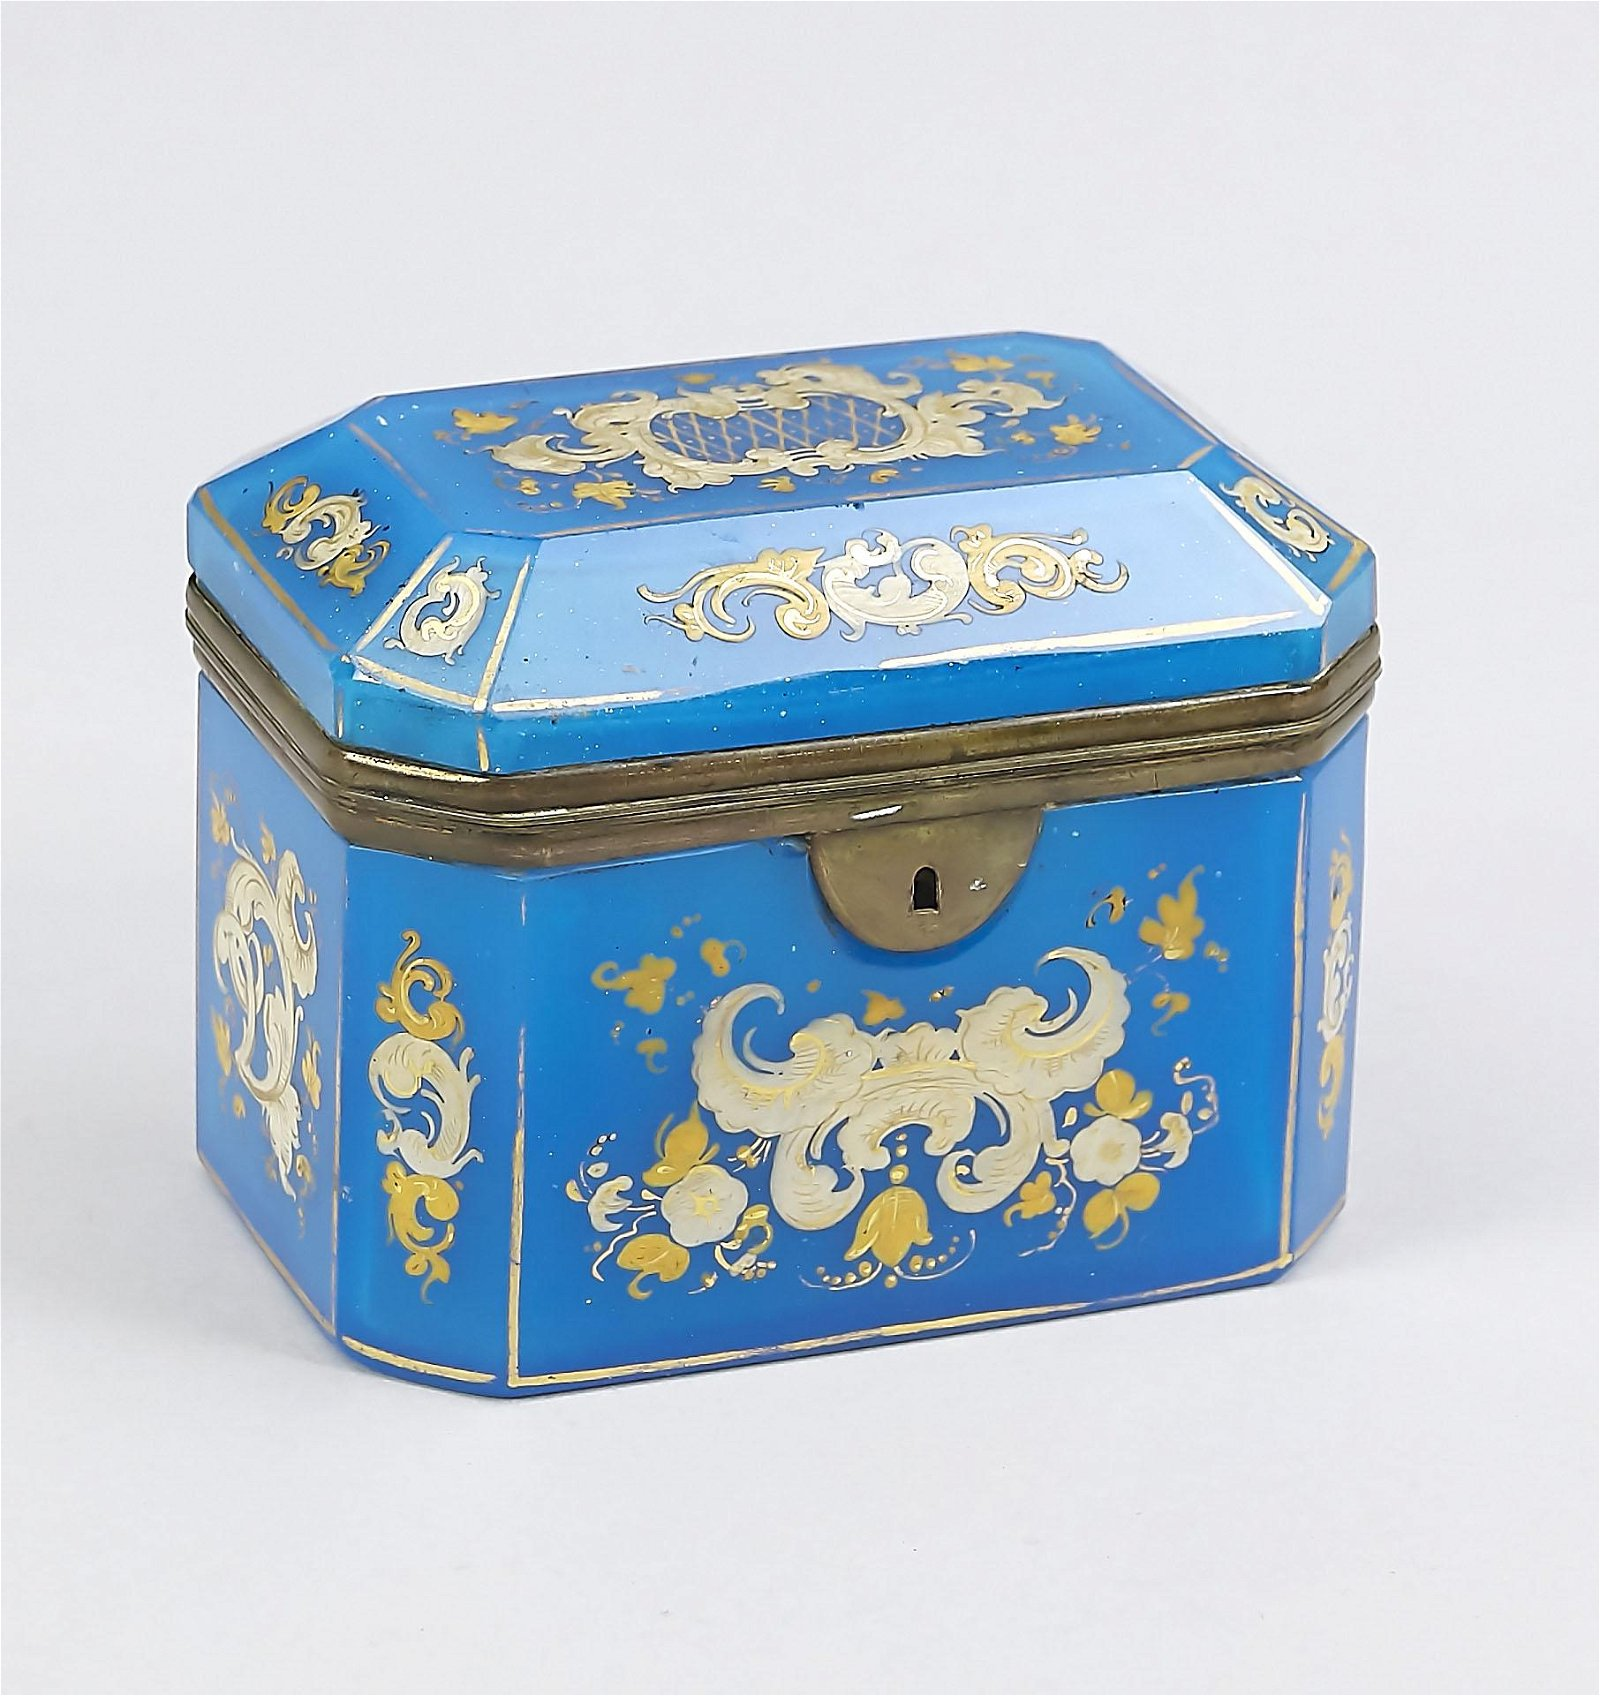 19th century blue glass lidded box with gold colored